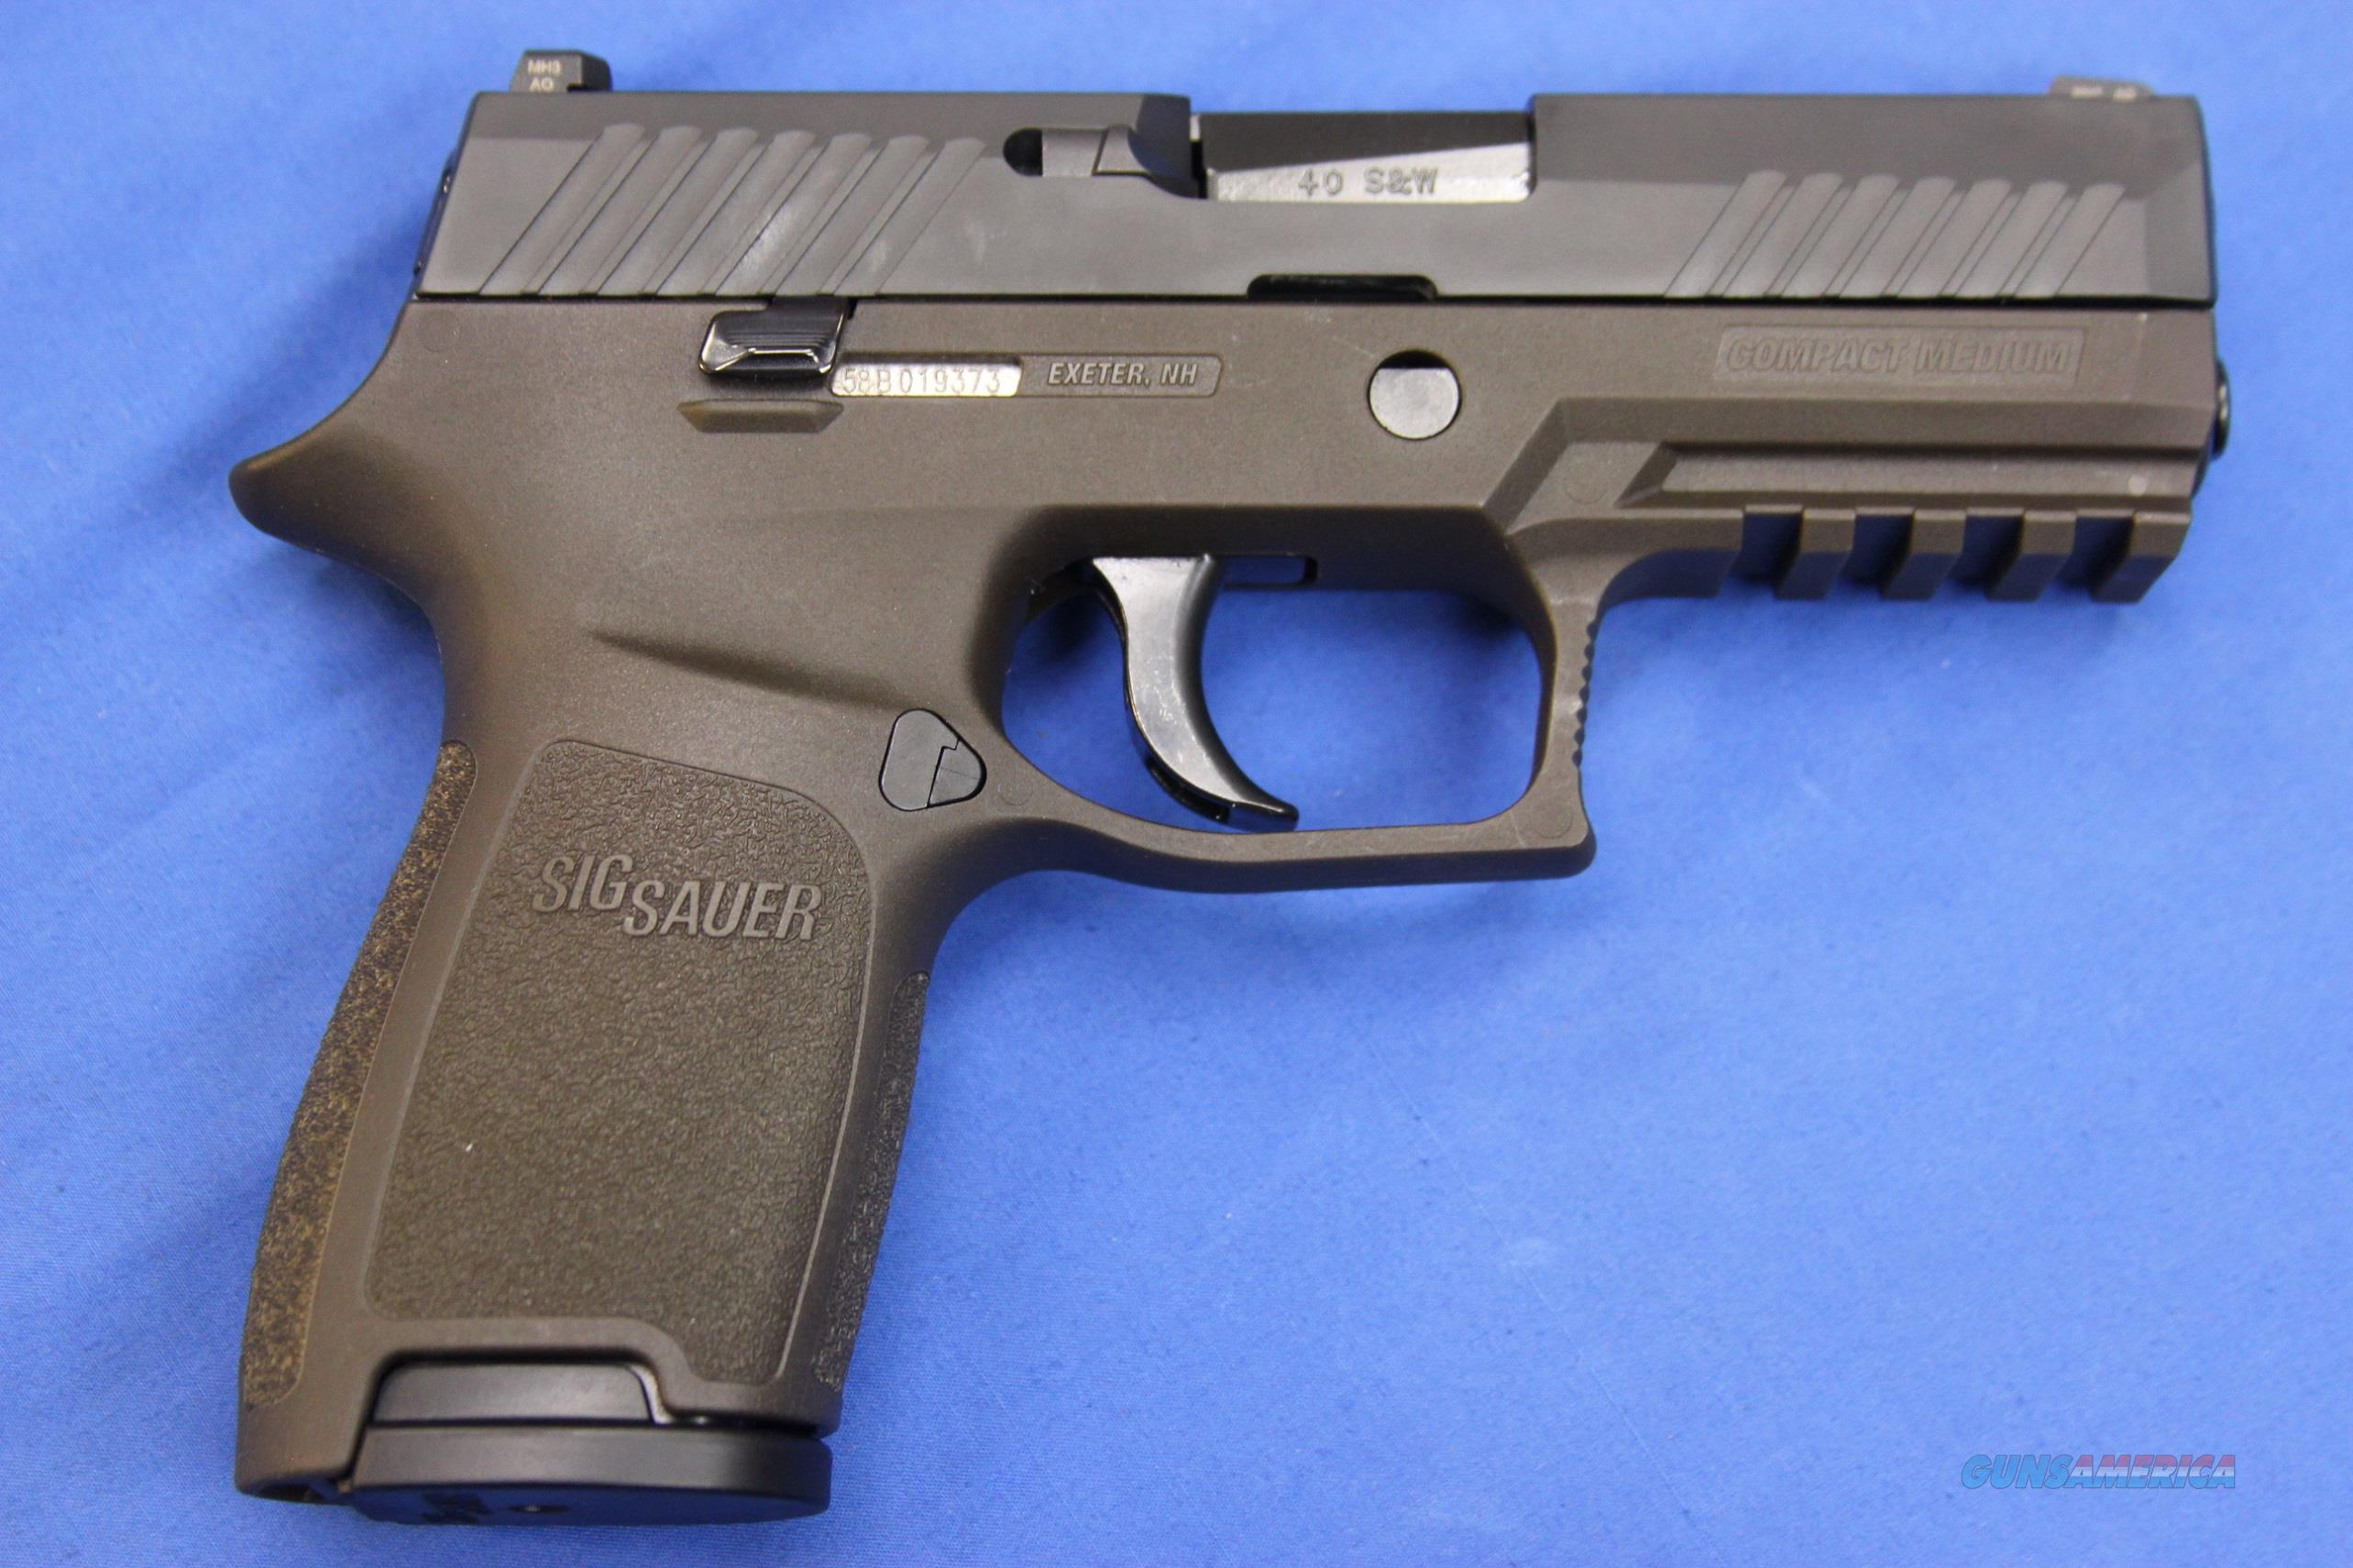 SIG SAUER P320 COMPACT  40 S&W ODG w/ BOX & EXTRA MAG